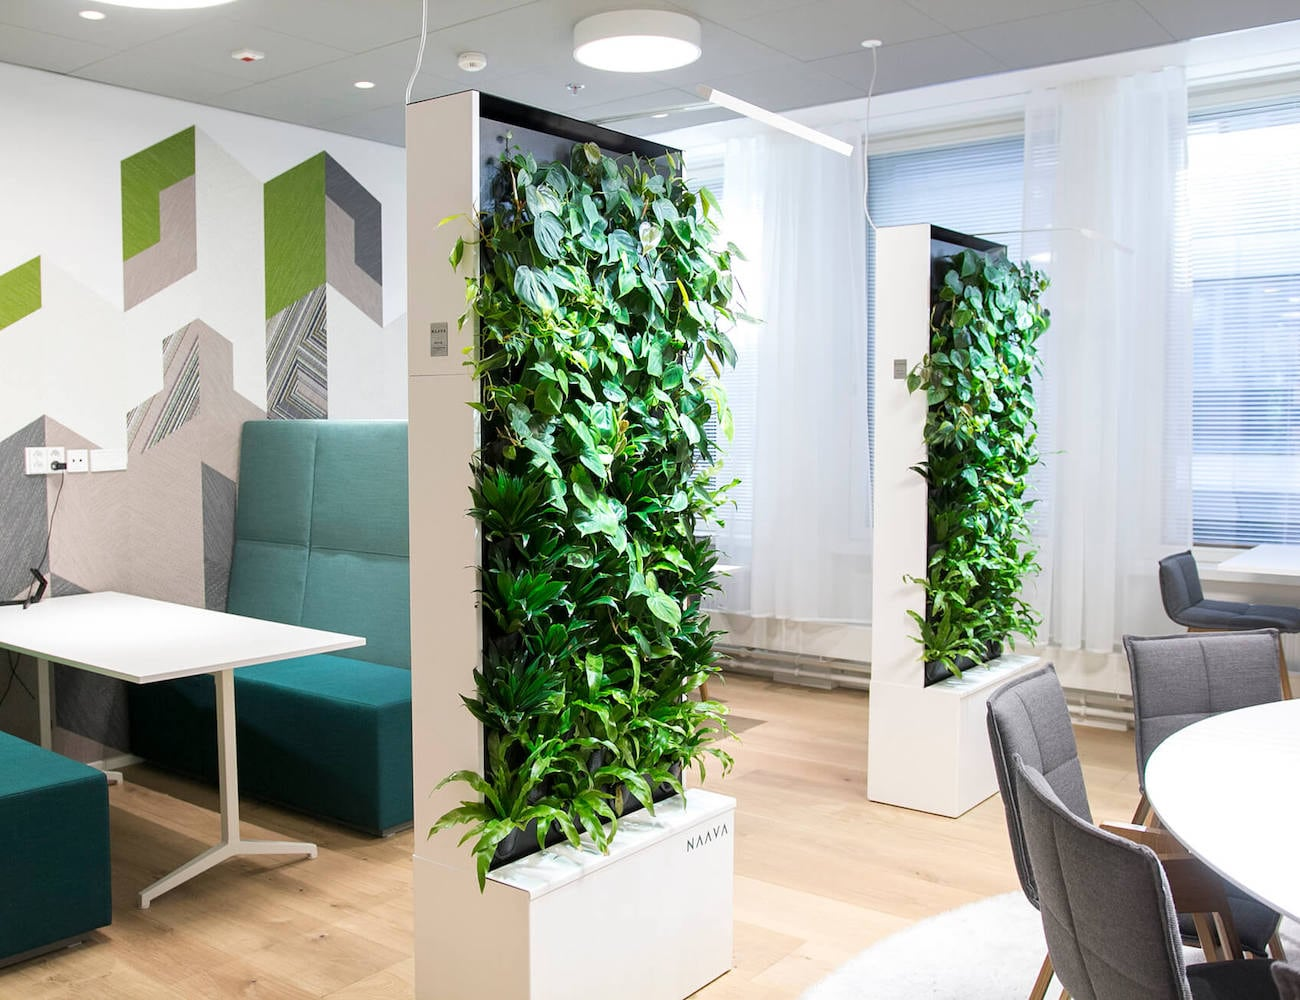 Naava One Green Wall Freestanding Planter gives your indoor environment an outdoor touch